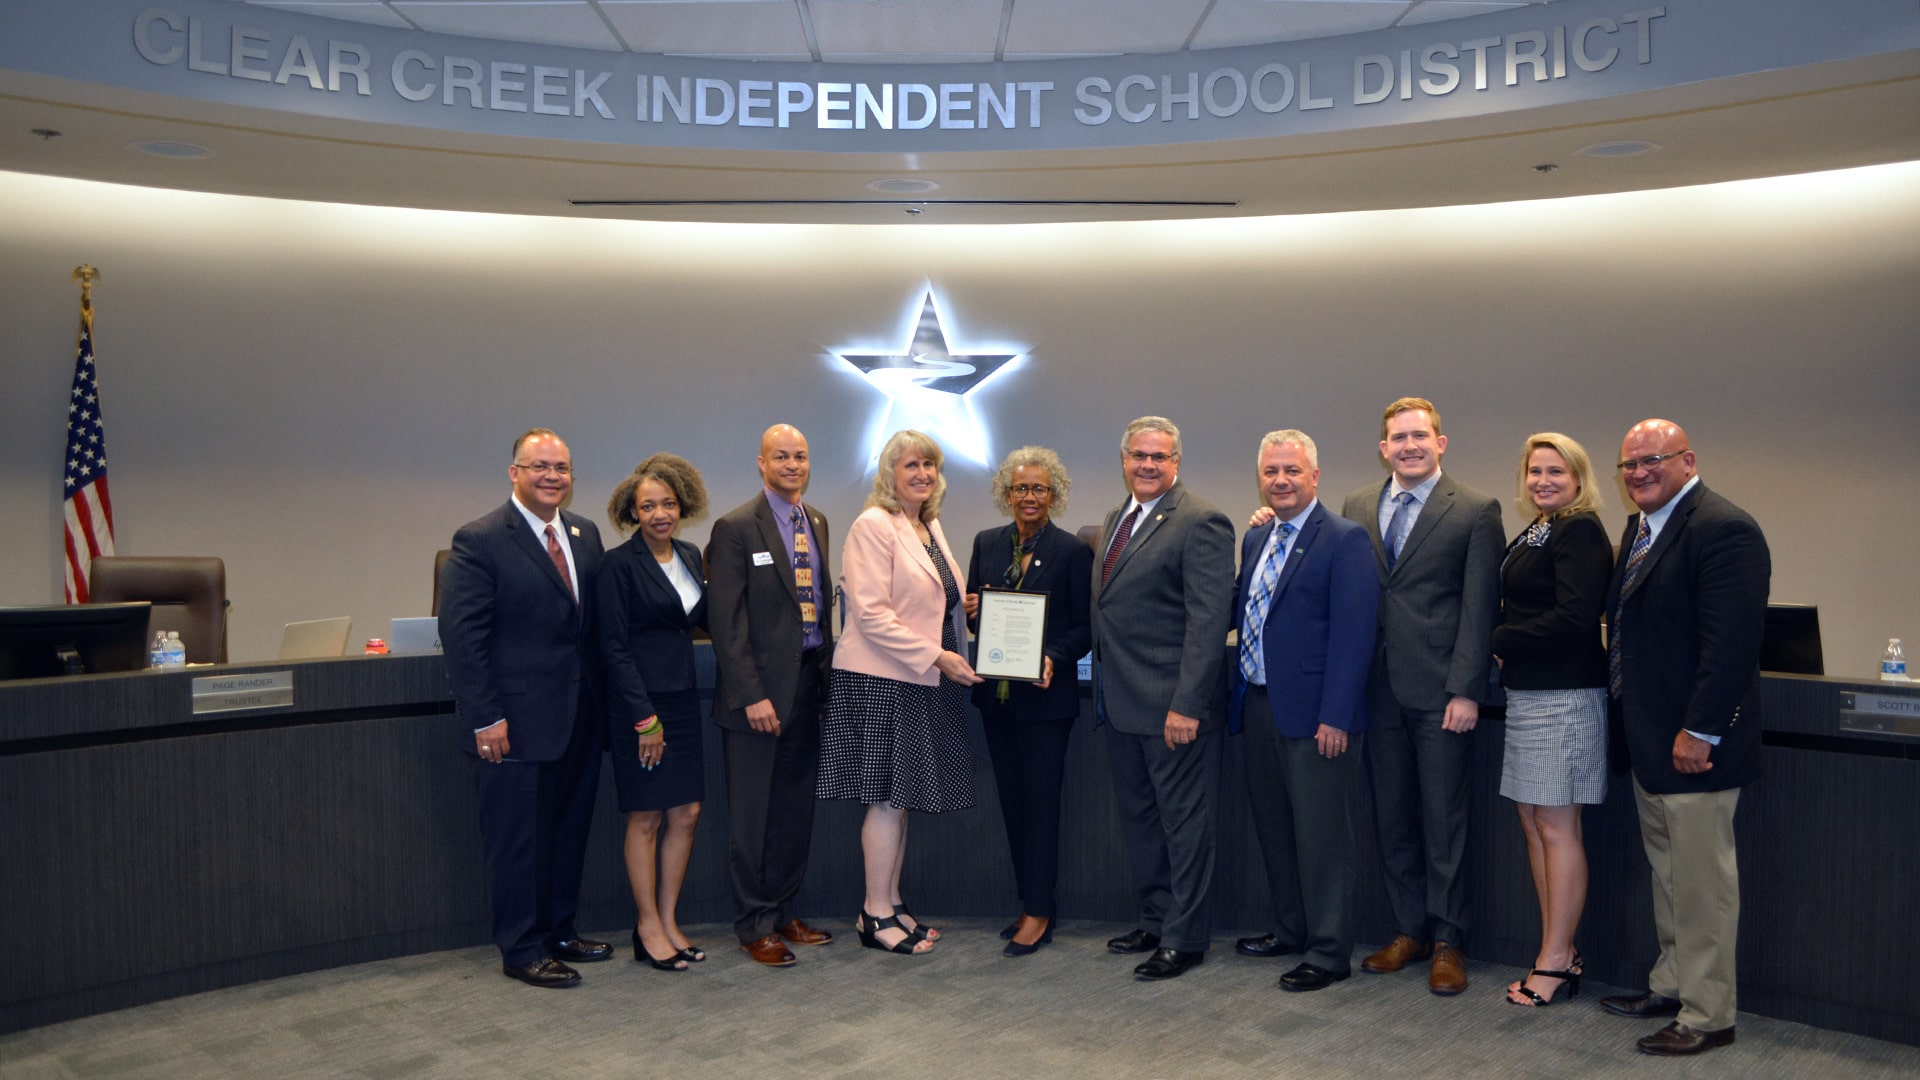 UHCL recognizes CCISD for 70th anniversary